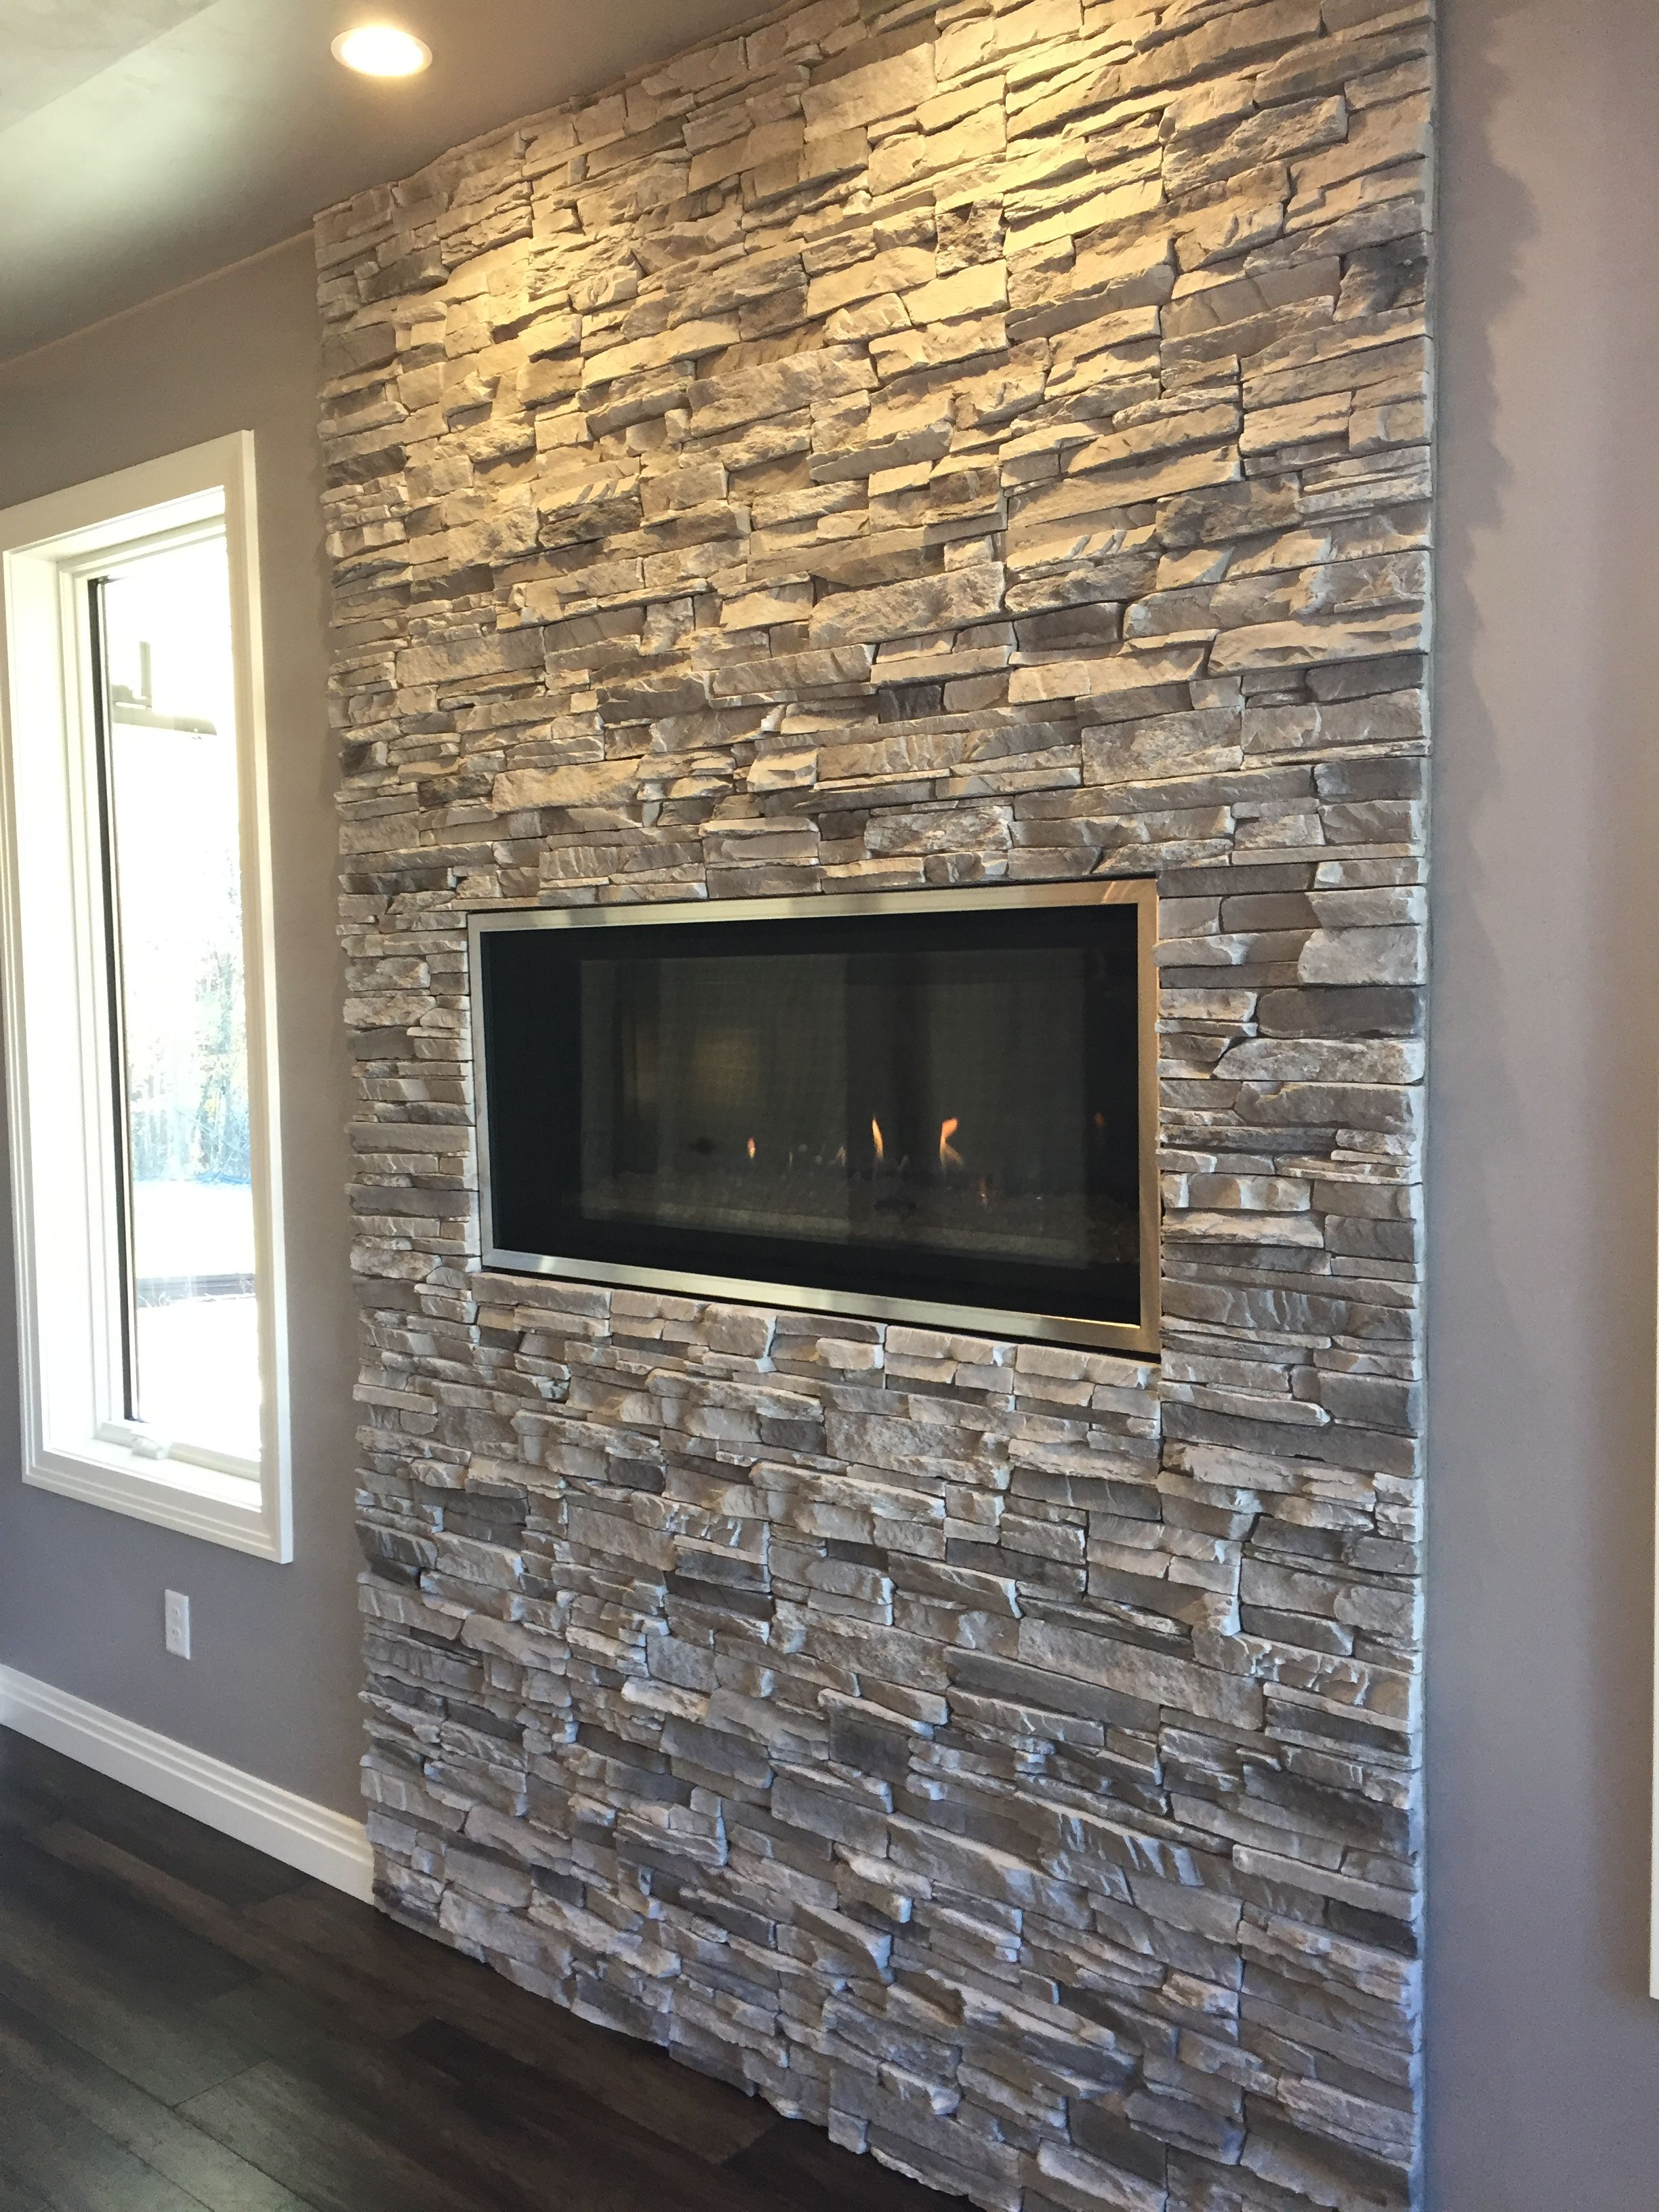 Contemporary Linear Fireplace With Silver Lining Stacked Stone. No Mantel  For This Modern Look. Linearer KaminGestapelte SteineKaminsimseKamine